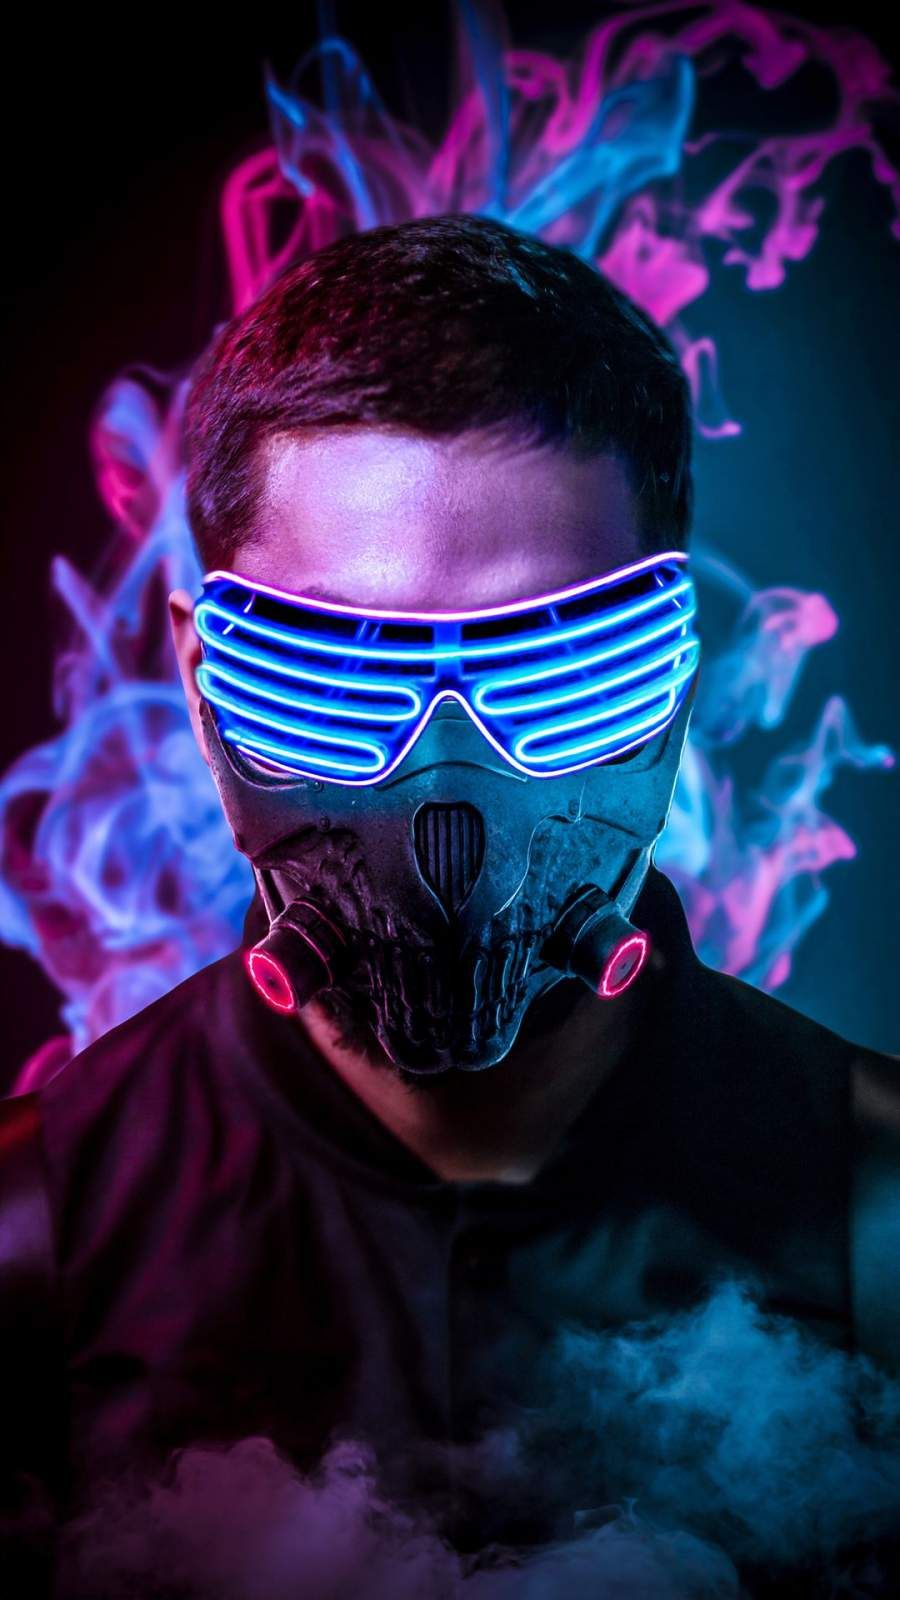 Neon Face Mask iPhone Wallpaper (With images) Neon